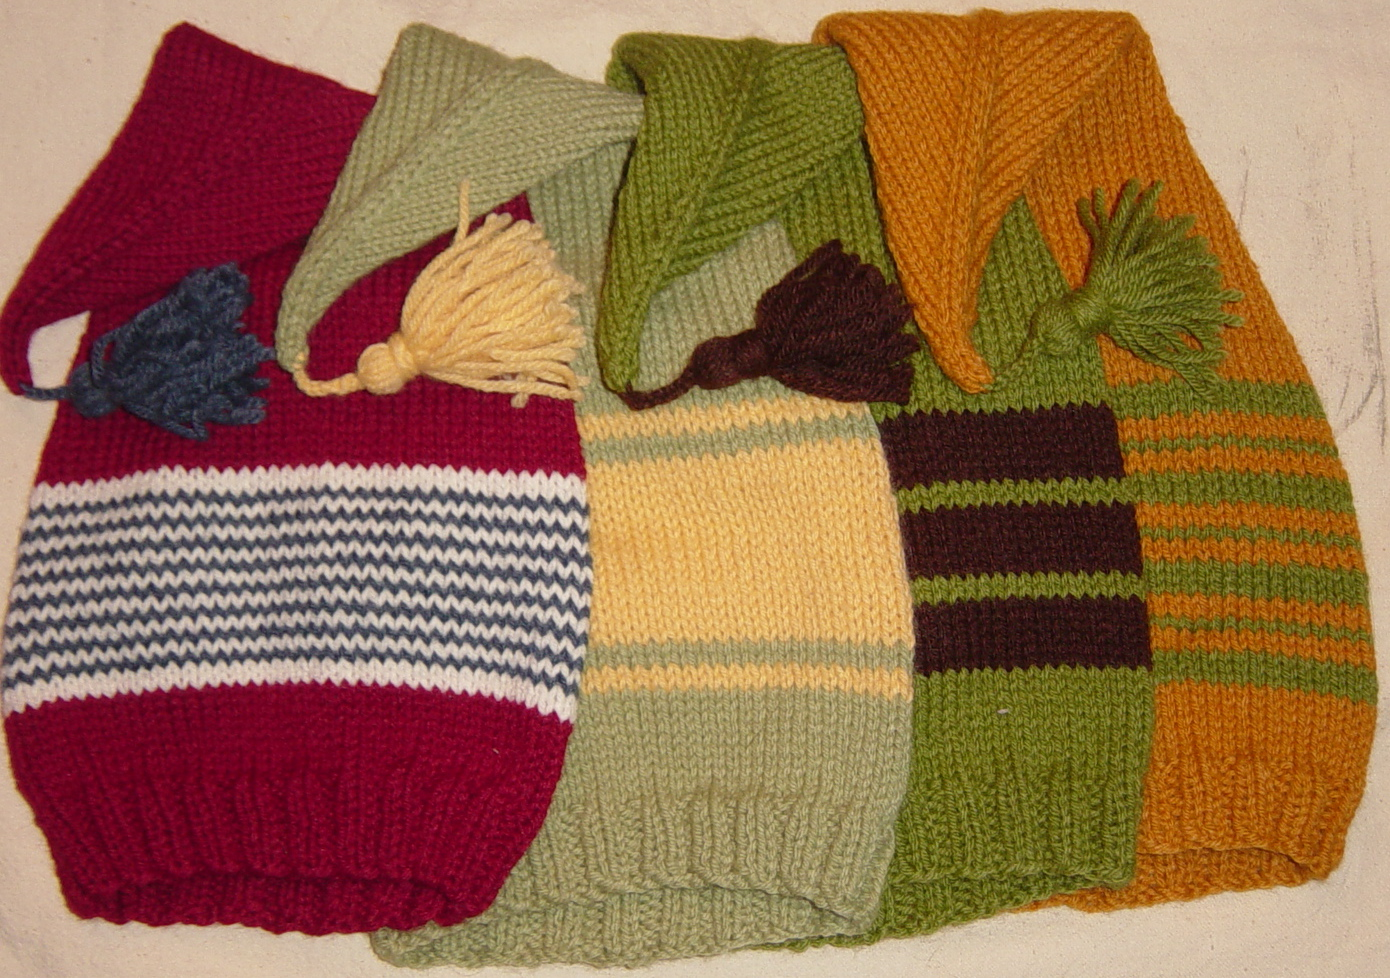 Knitting Items For Sale : Items for sale knitted ewe